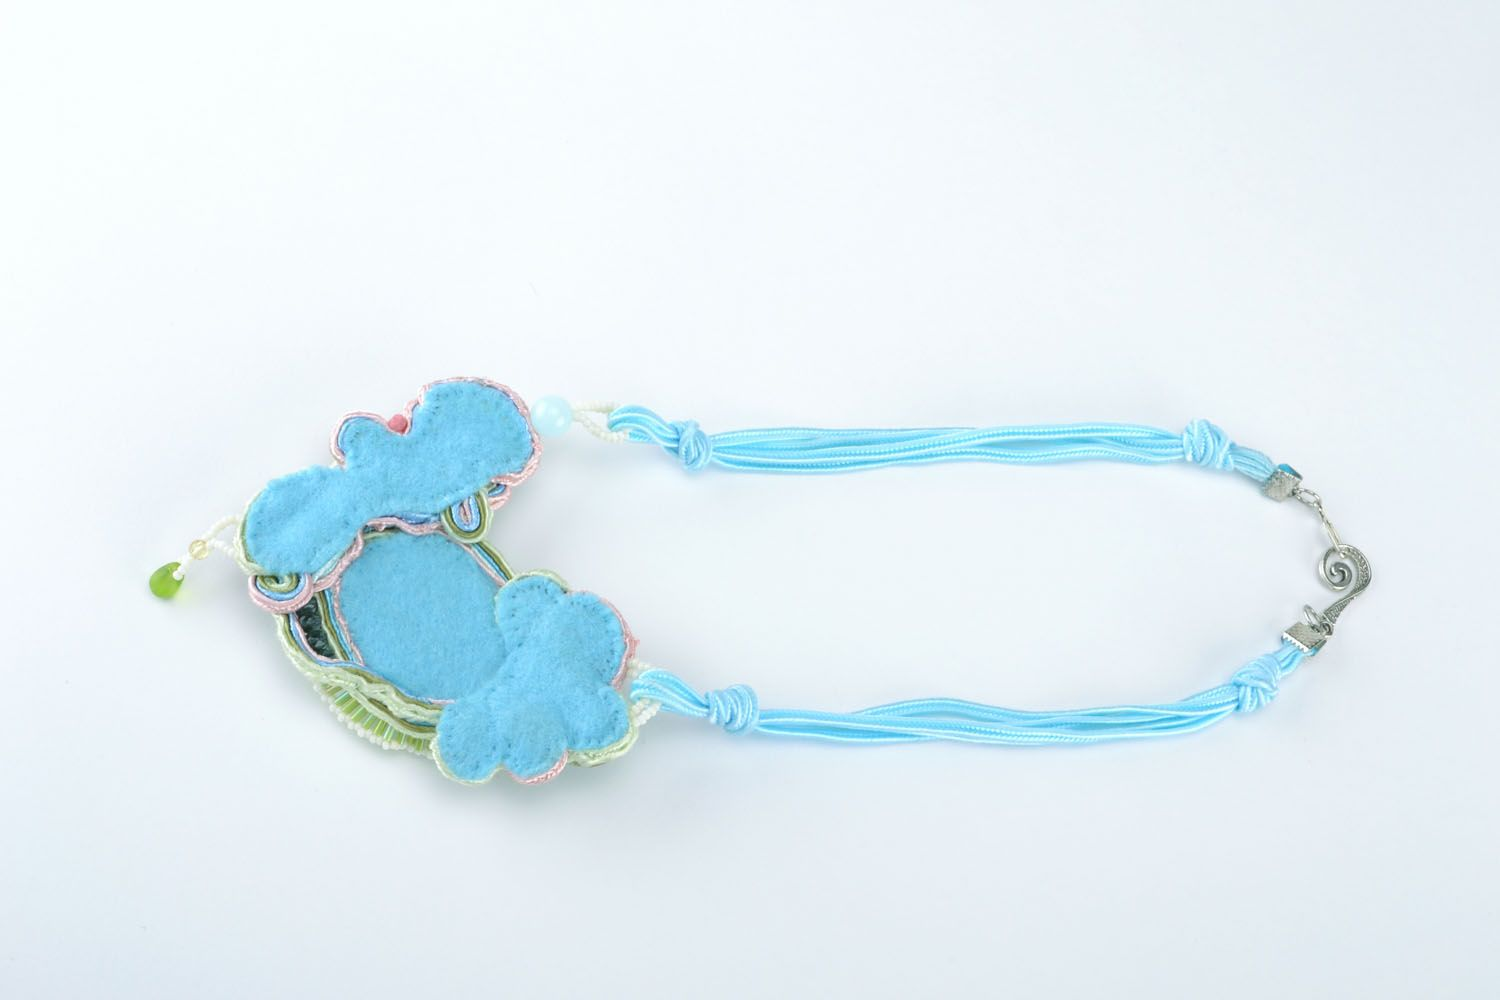 Necklace with natural stones photo 2